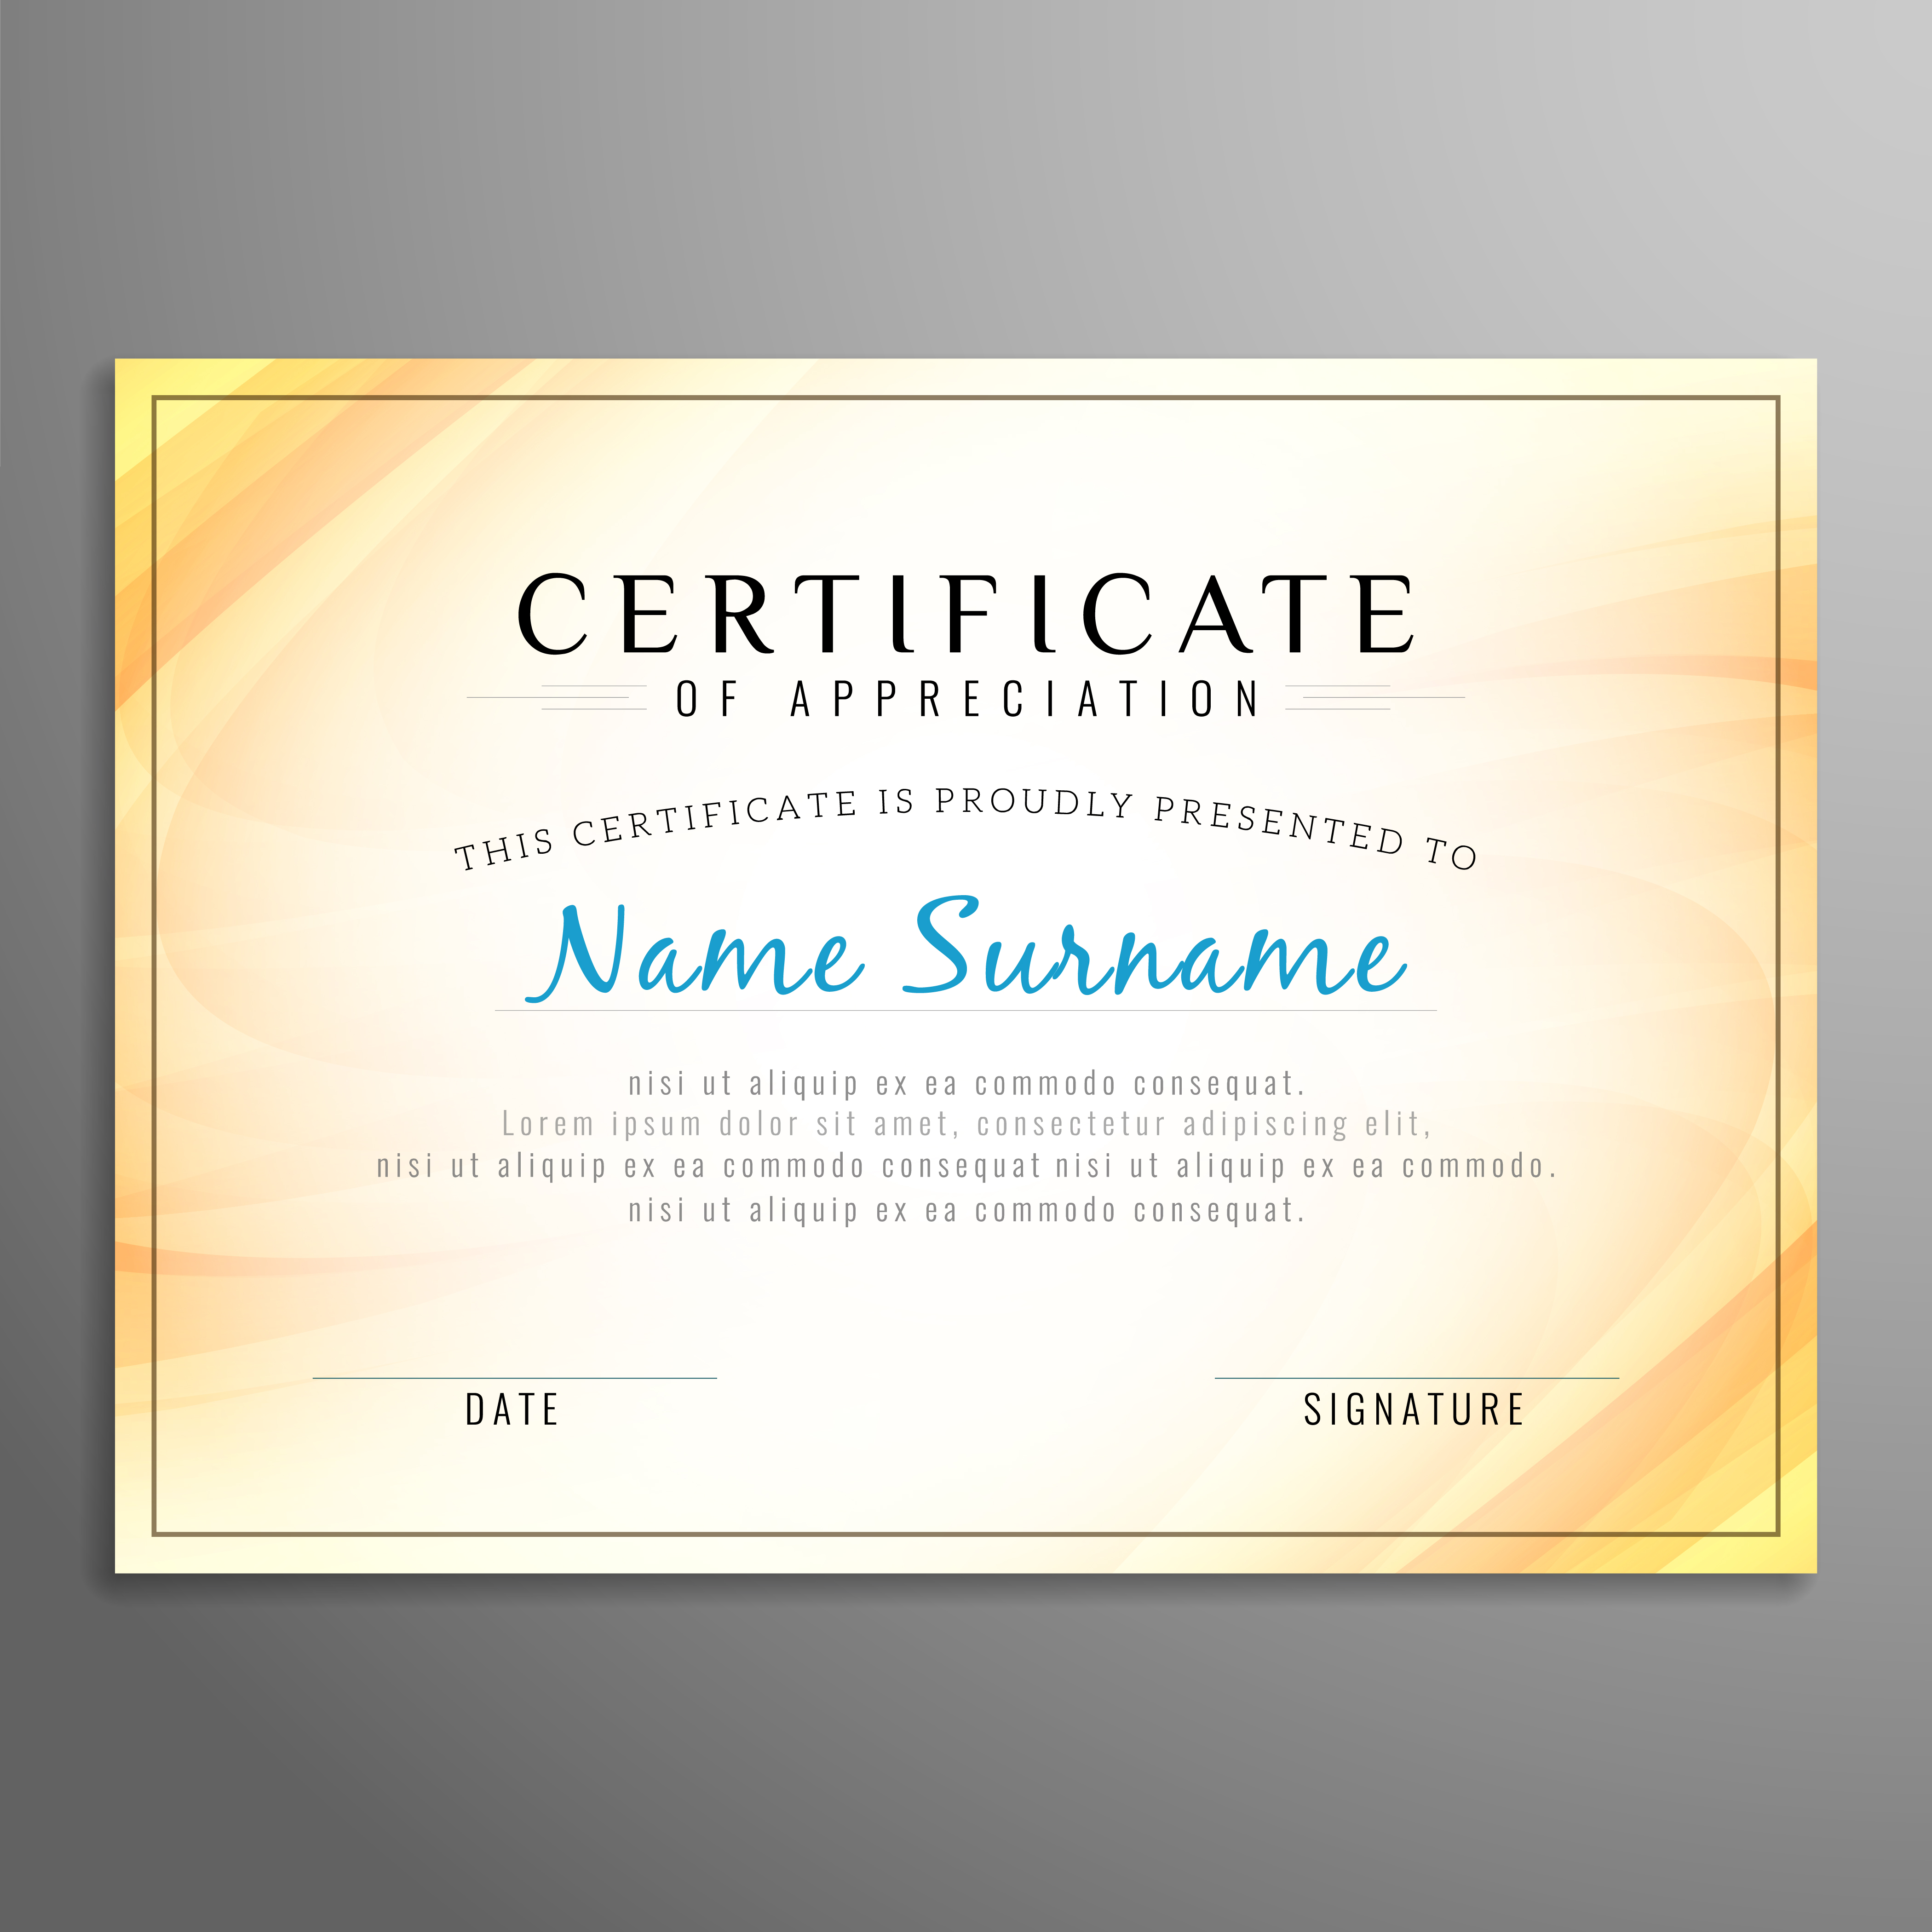 Abstract Modern Certificate Design Template Download Free Vector